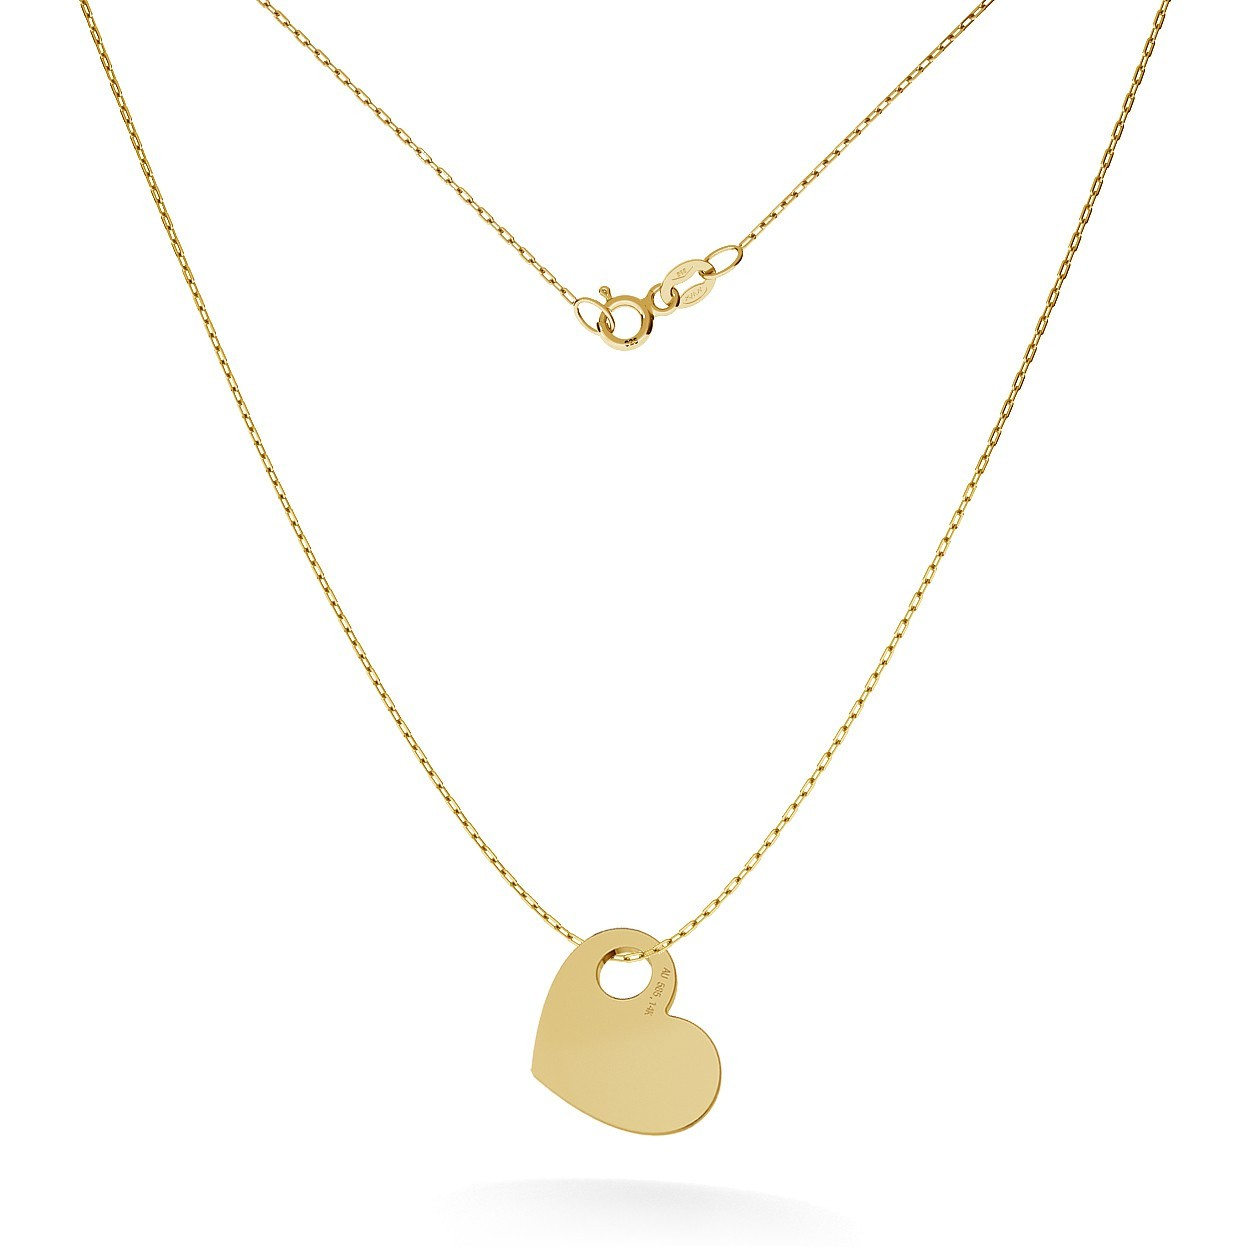 GOLD HEART NECKLACE 14K, MODEL 14